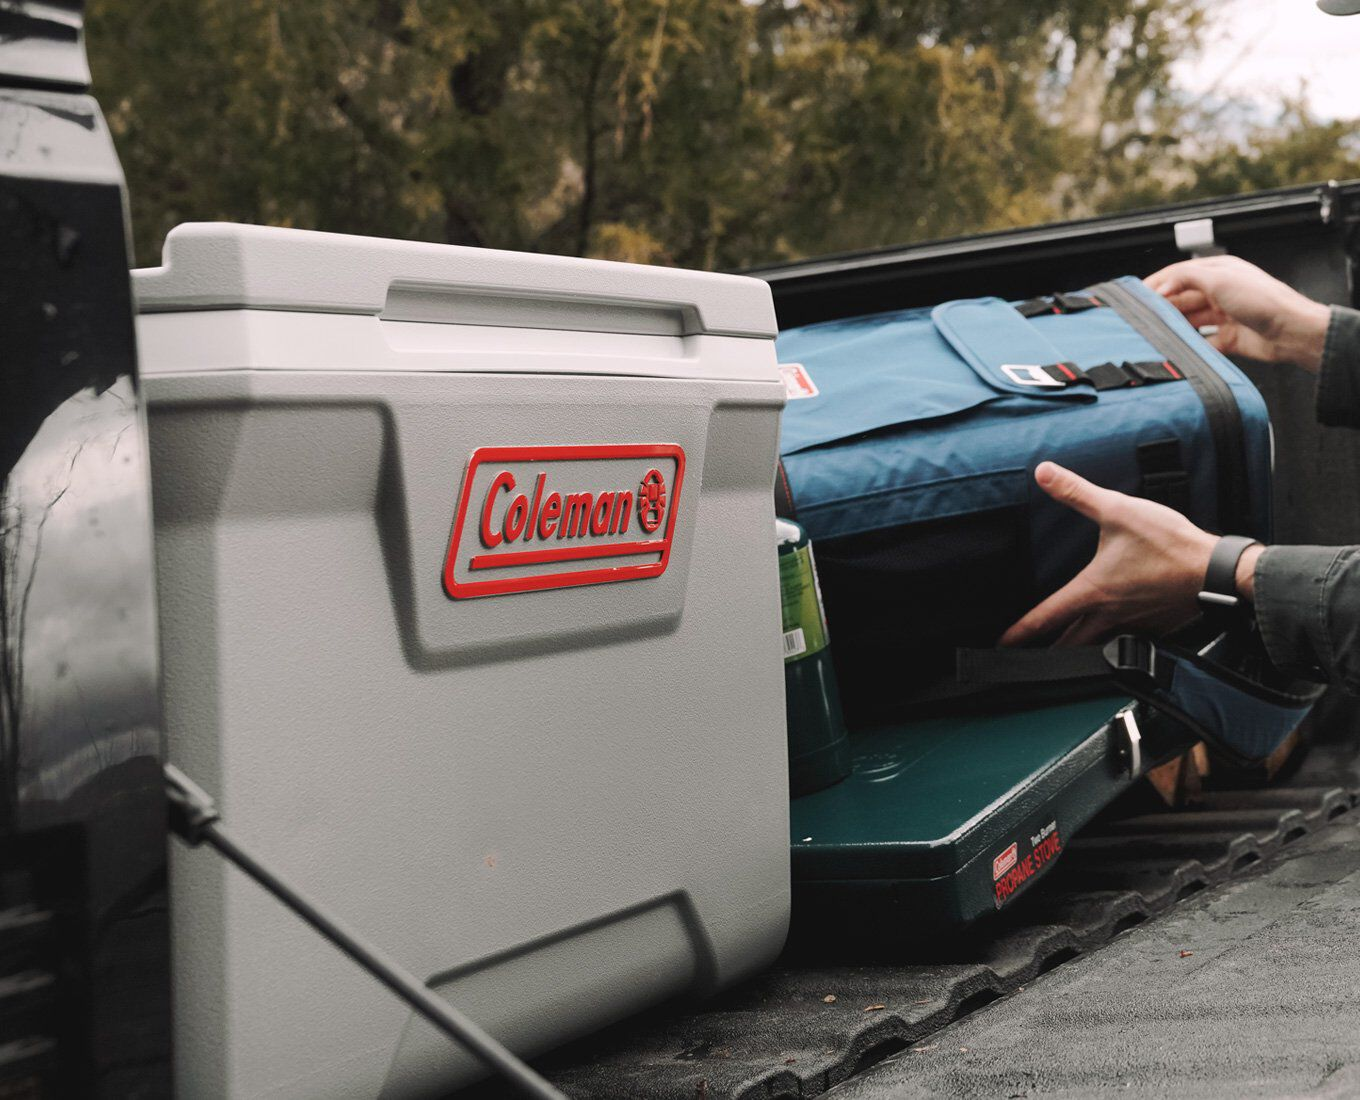 assorted outdoor camping gear being loaded into pickup truck